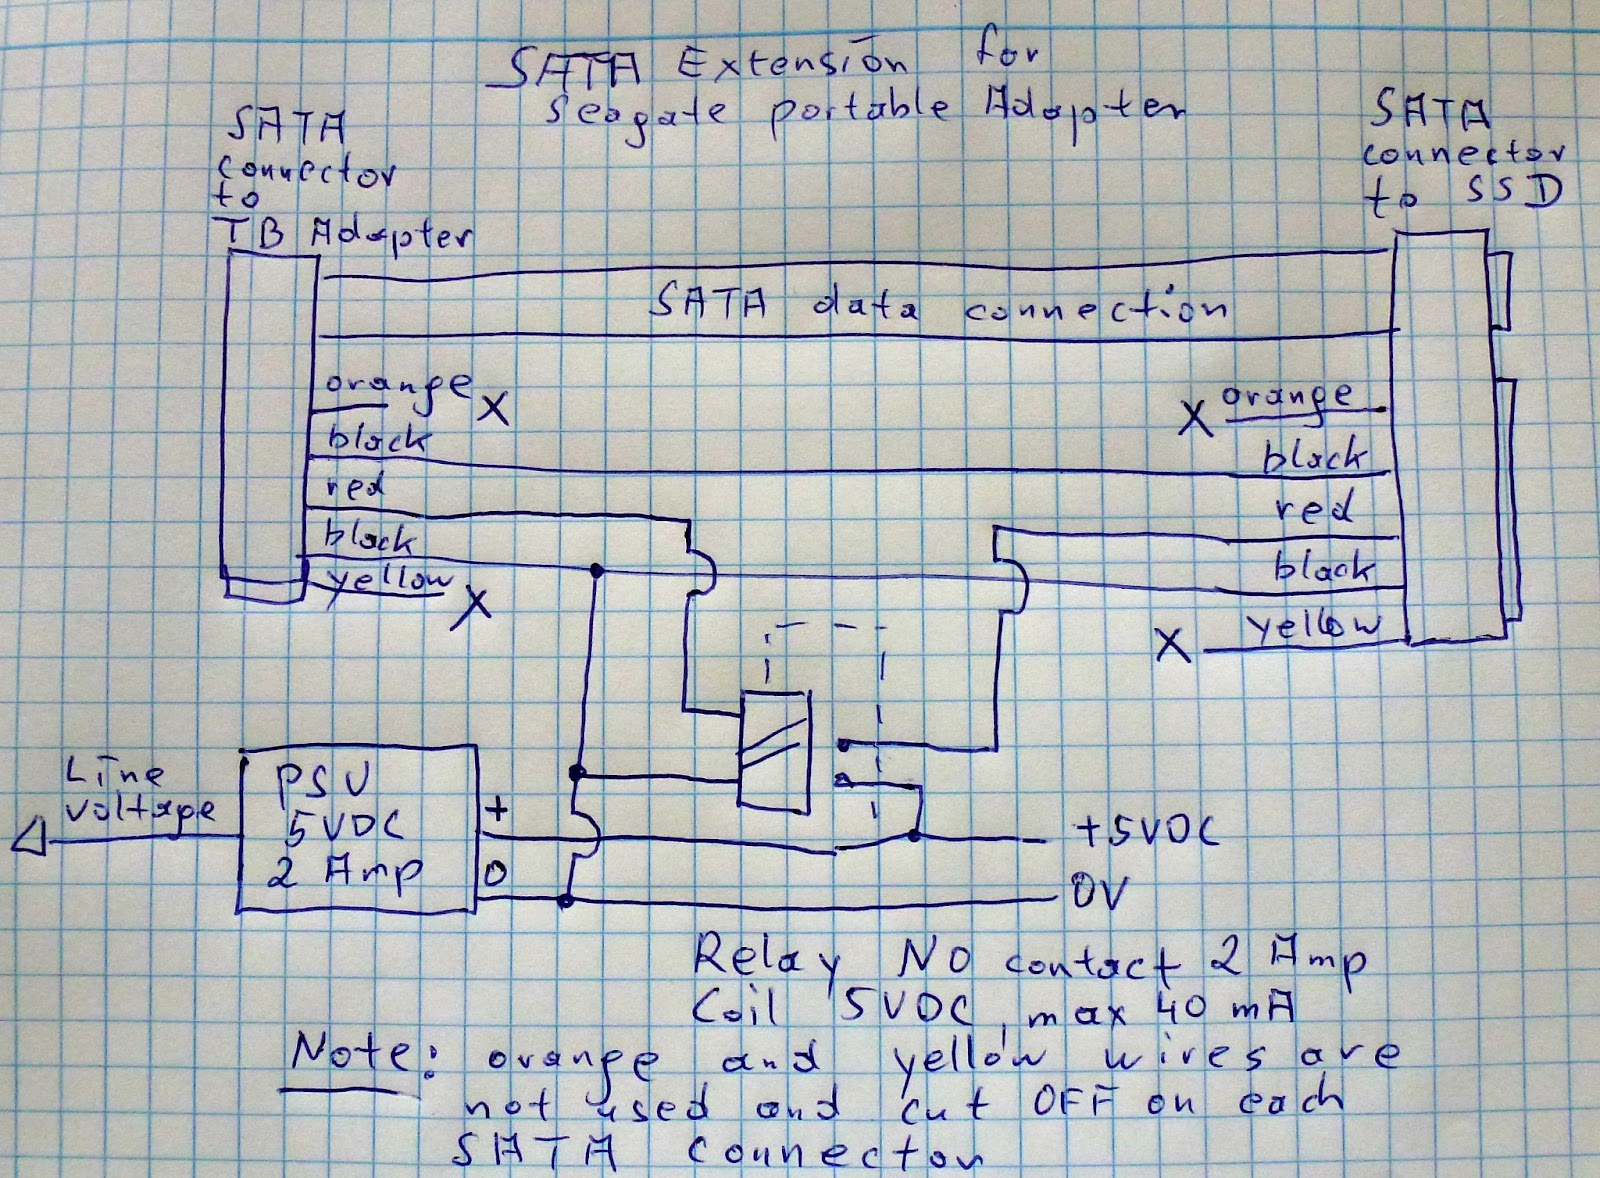 Sata To Usb Wiring Diagram 26 Images Jack Schematic P1010097crop Wolfgangs Technology World Mac With Seagate Thunderbolt Adapter At Cita